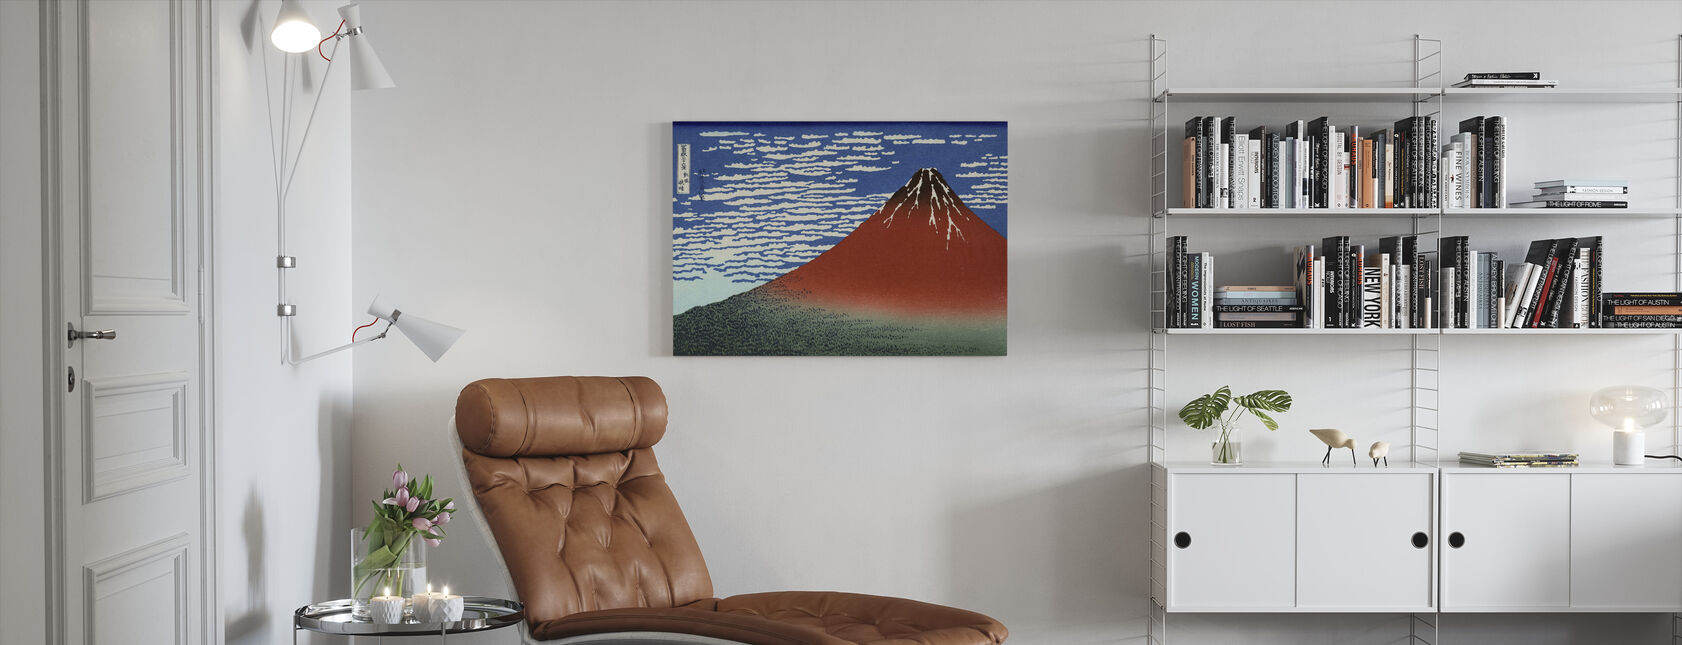 Red Fuji, Katsushika Hokusai - Canvas print - Living Room